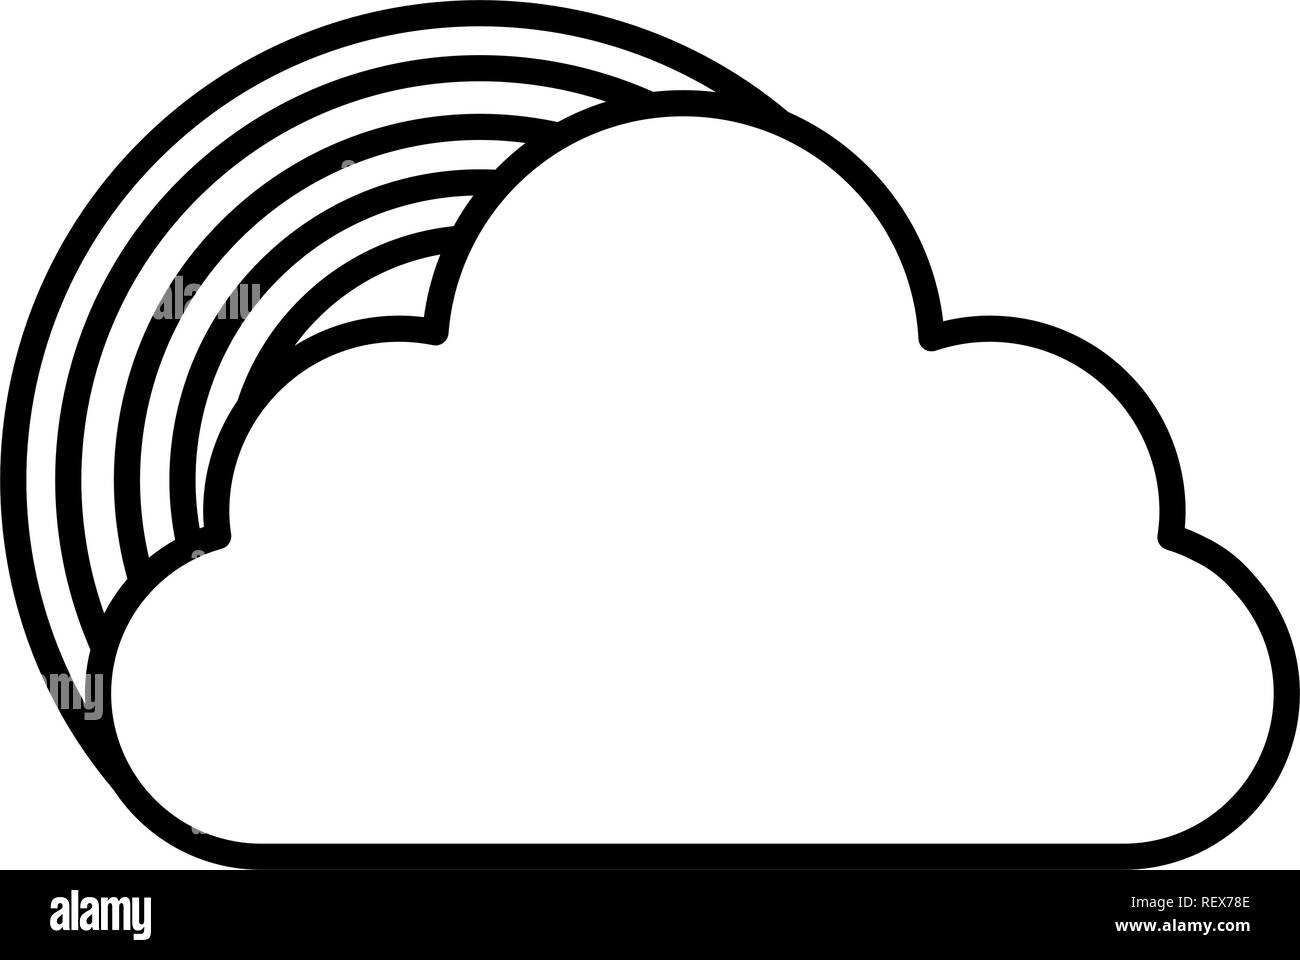 cloud and rainbow over white background, vector illustration - Stock Image